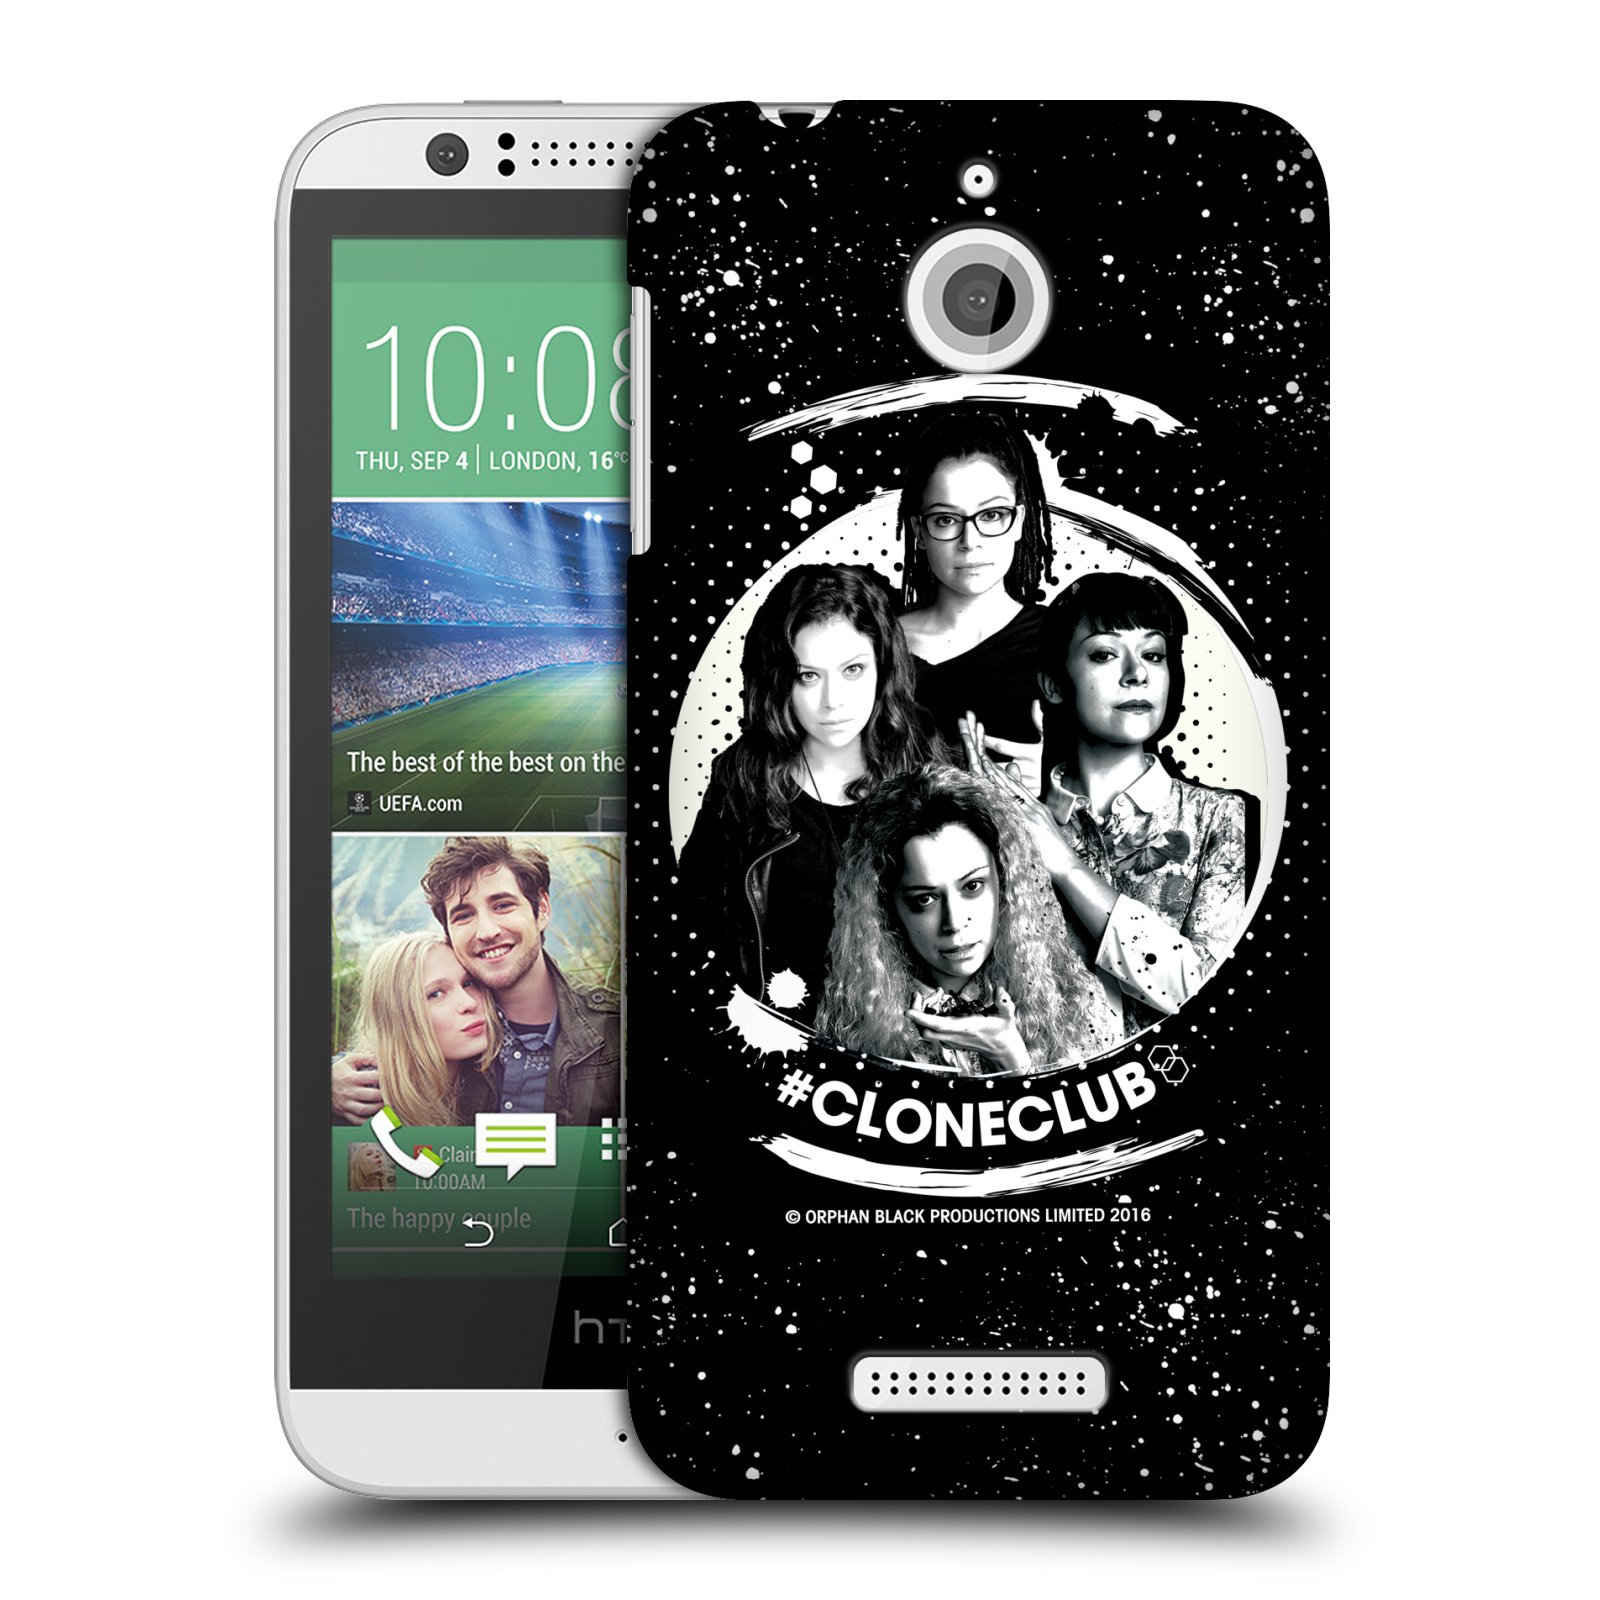 OFFICIAL ORPHAN BLACK #CLONECLUB HARD BACK CASE FOR HTC PHONES 2